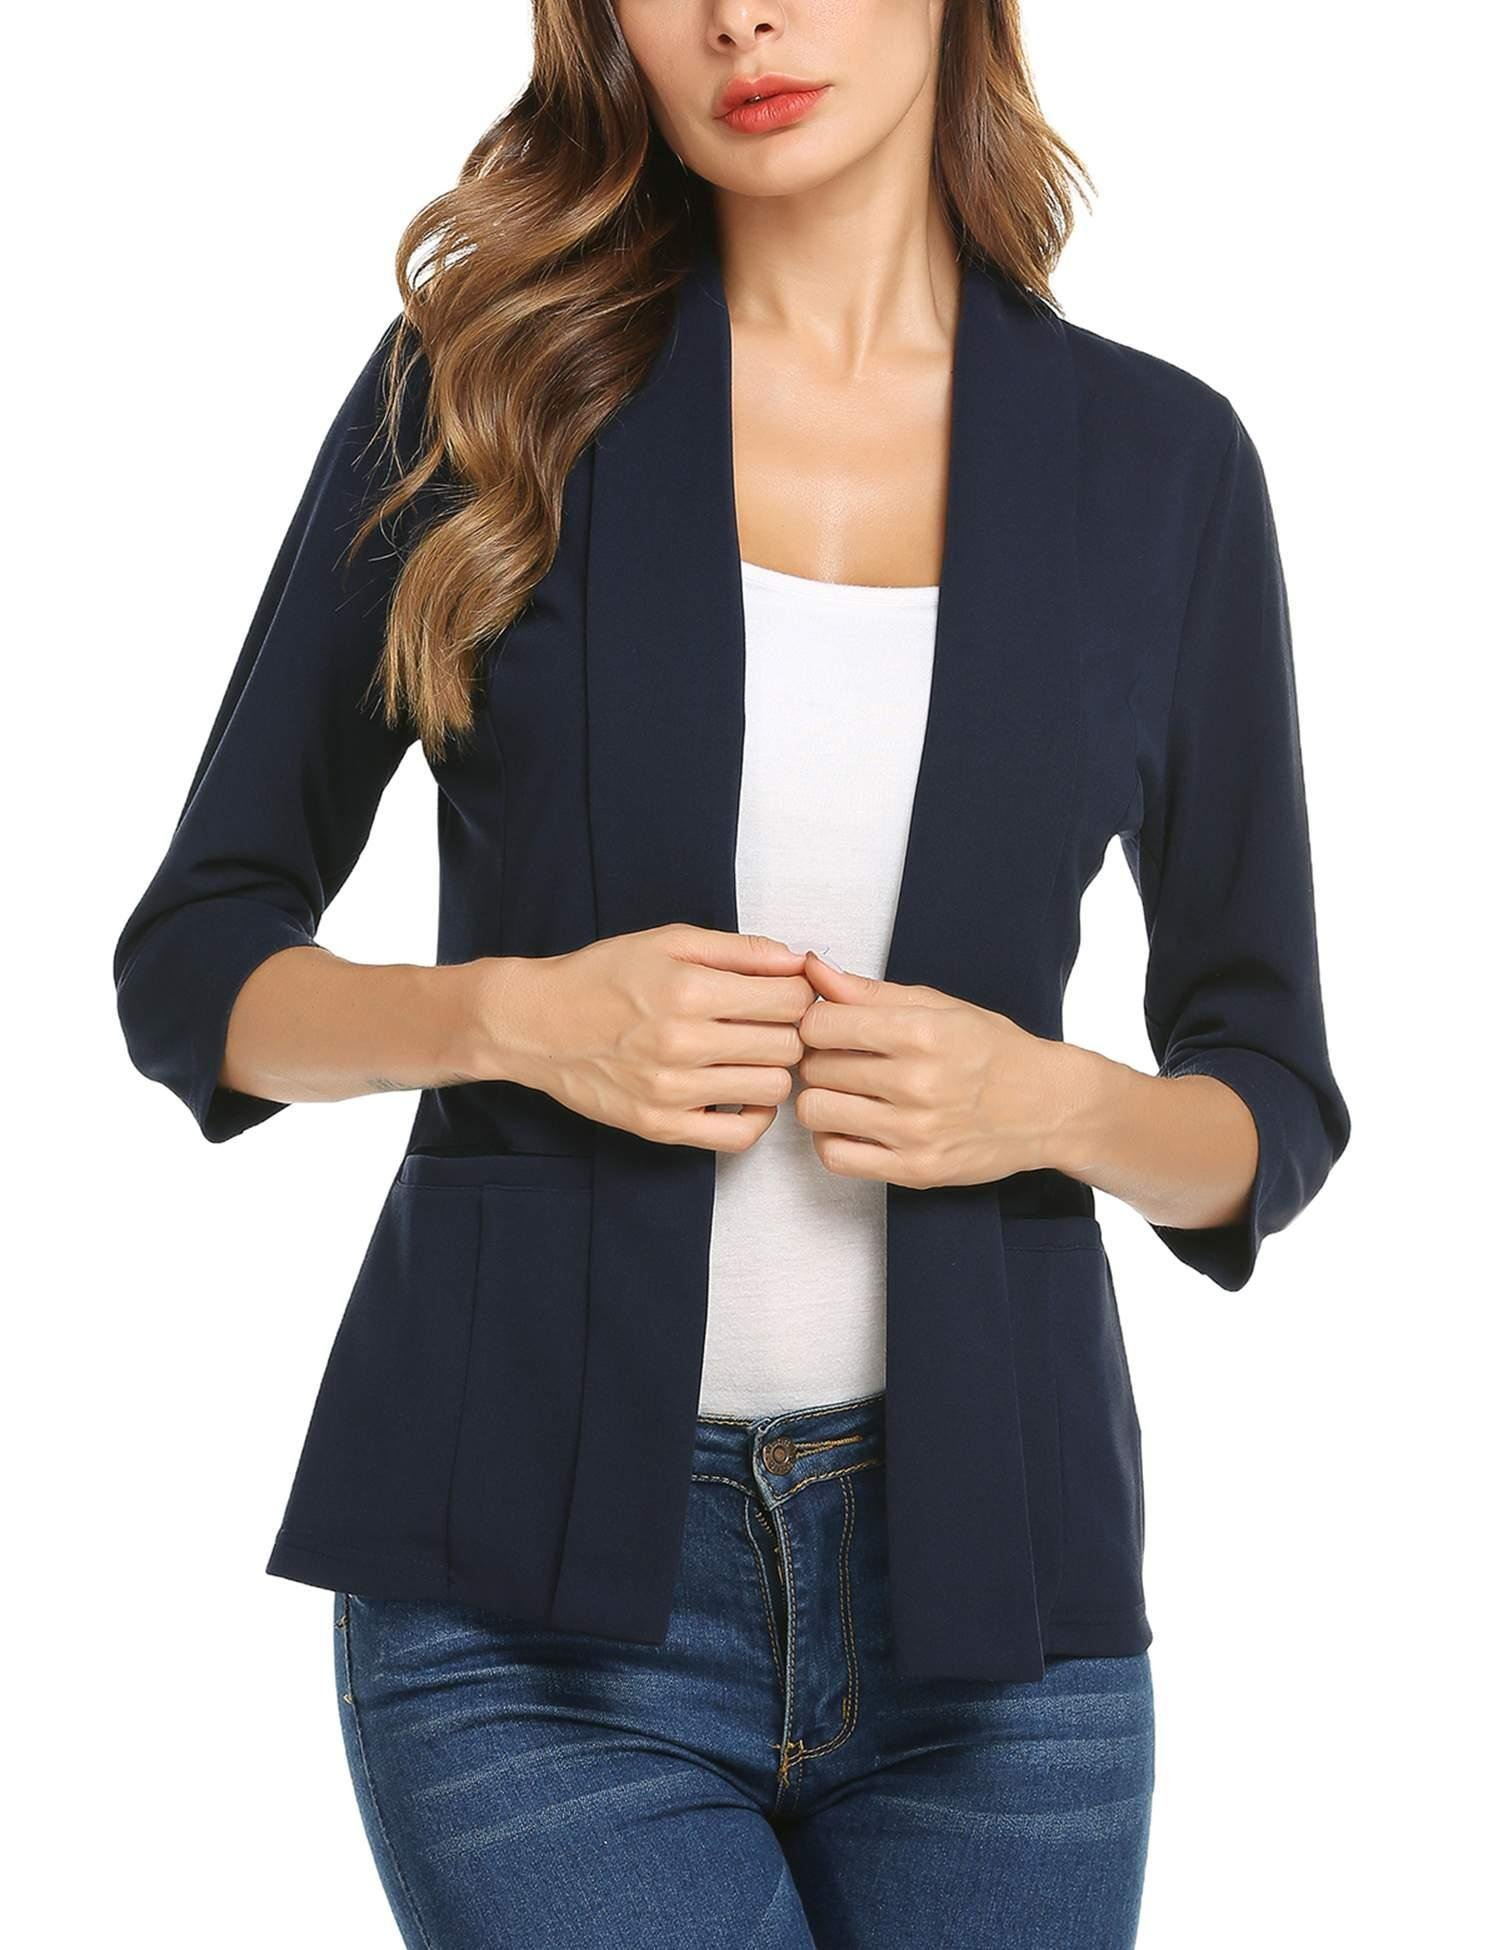 Concep Womens Casual Work Office Blazer Jacket Lightweight Long Sleeve Open Front Cardigans (Navy Blue, XL)